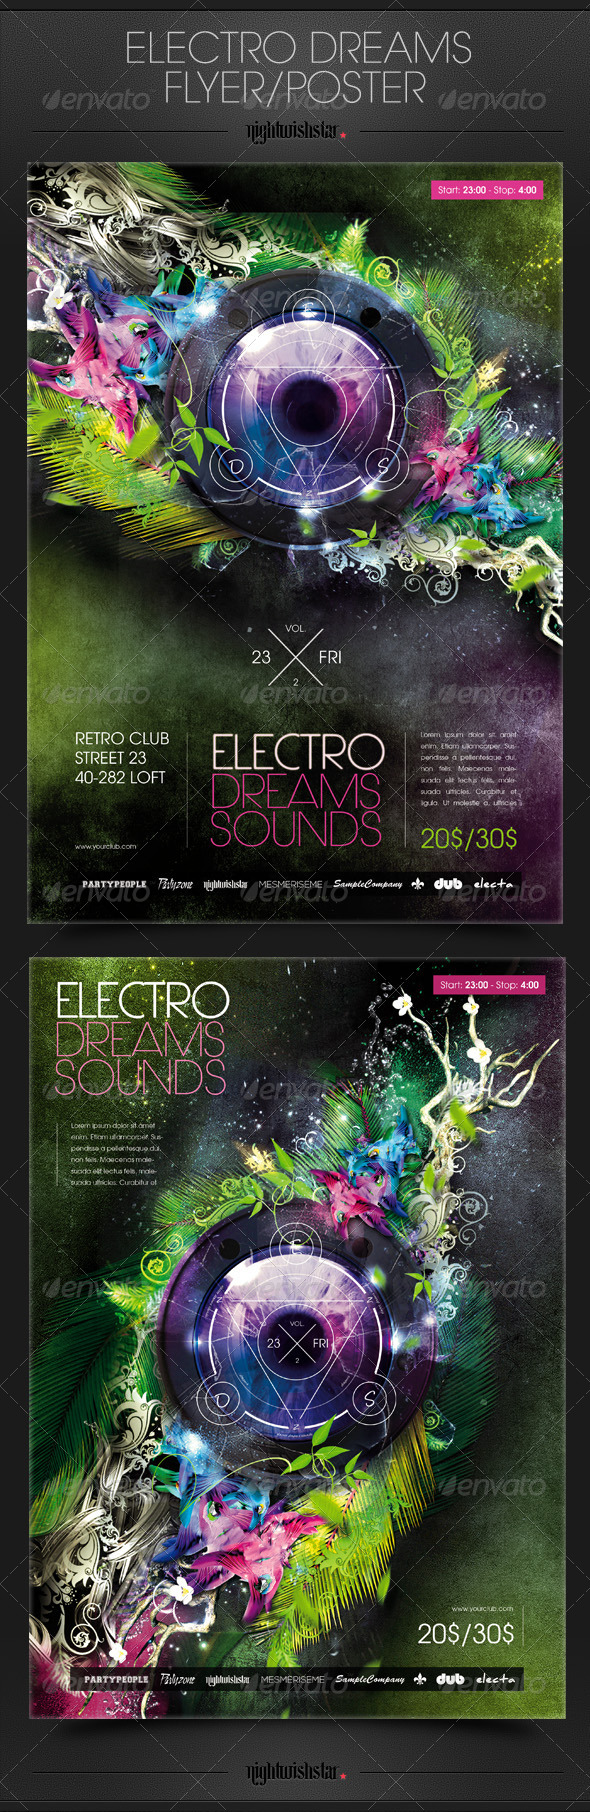 GraphicRiver Electro Dreams Poster Flyer 6658163